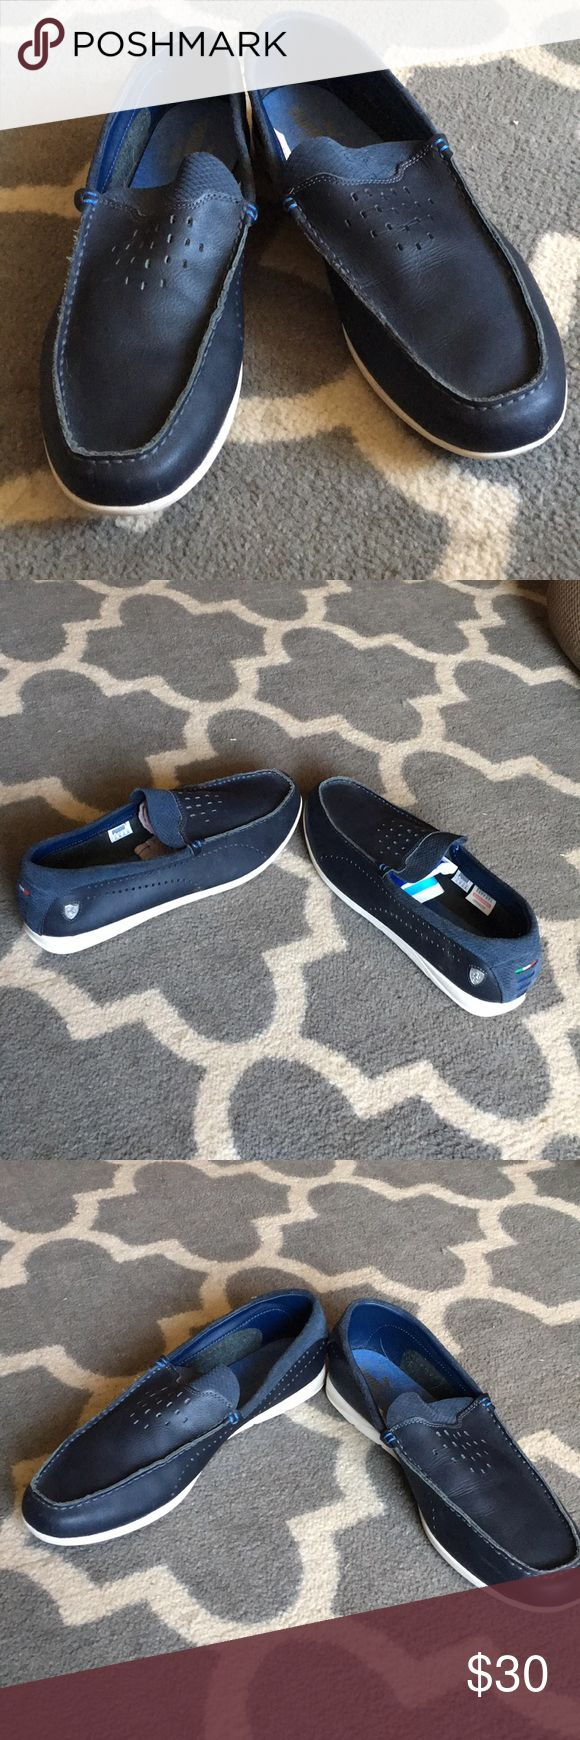 Mens navy puma Ferrari slide sliders Excellent condition Navy colored sliders. Ferrari emblem on sides and back. Puma on front tongue. Shoes Loafers & Slip-Ons